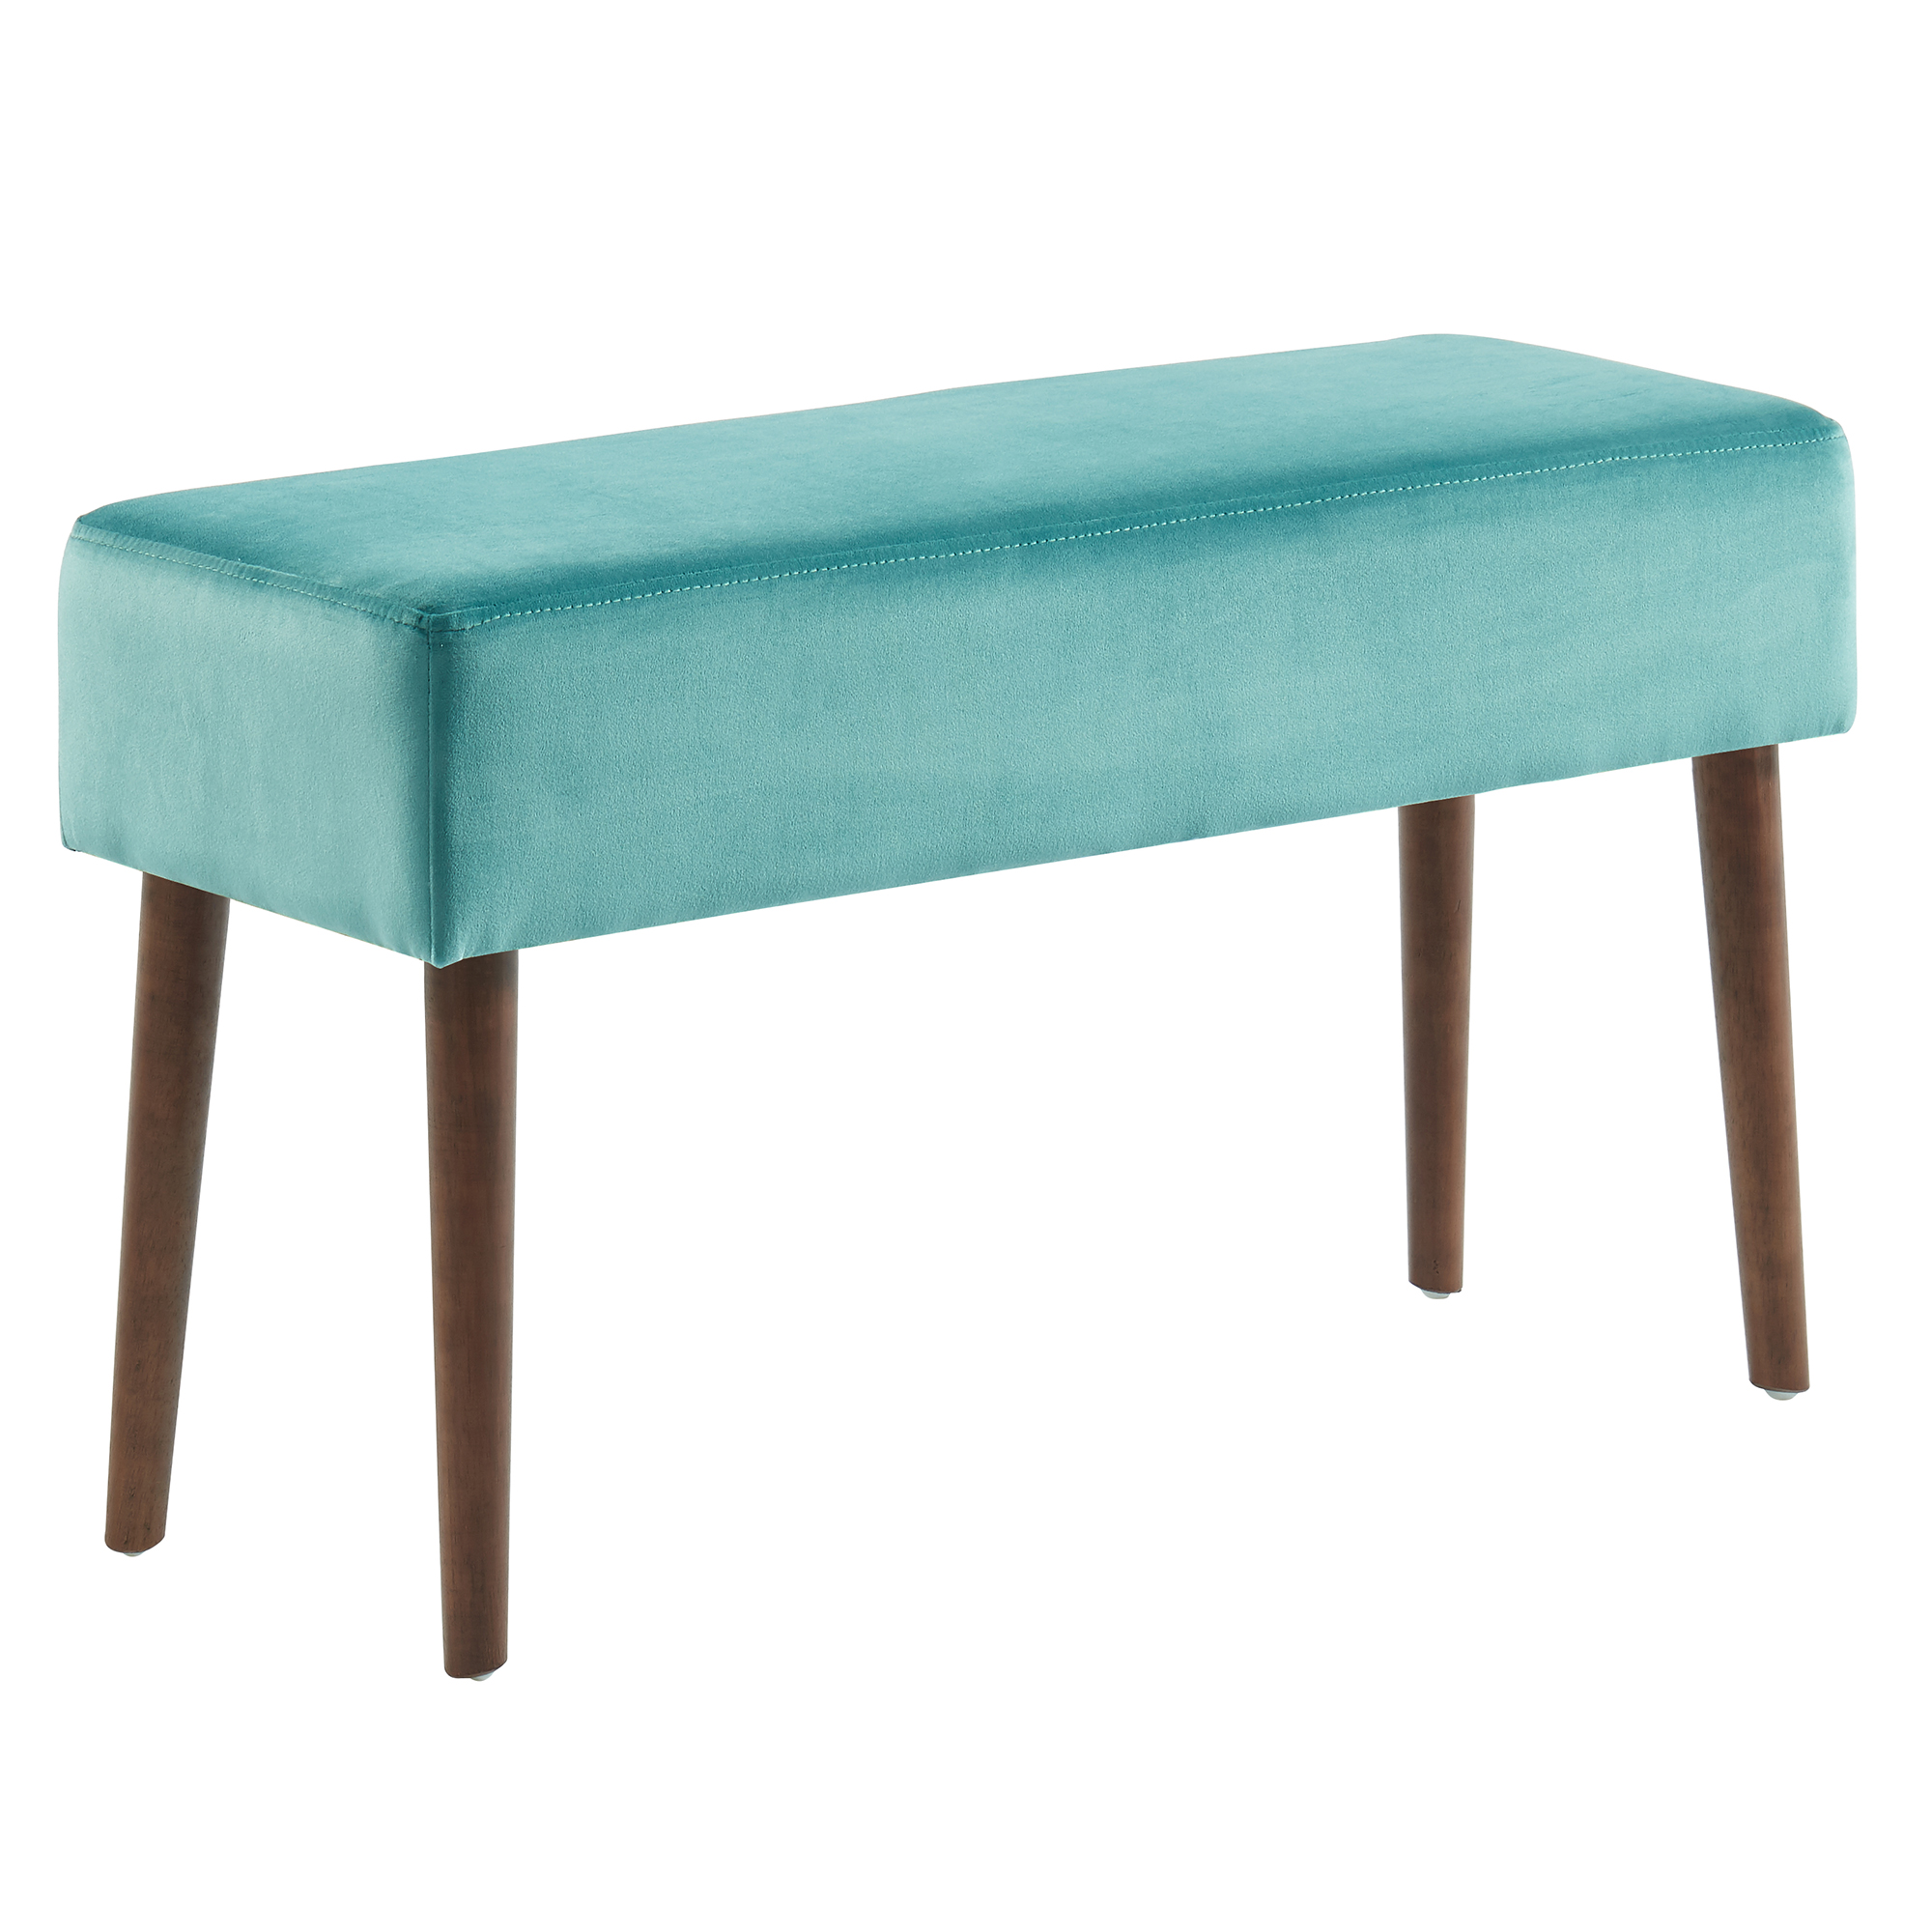 Mid-Century Velvet & Solid Wood Bench in Teal